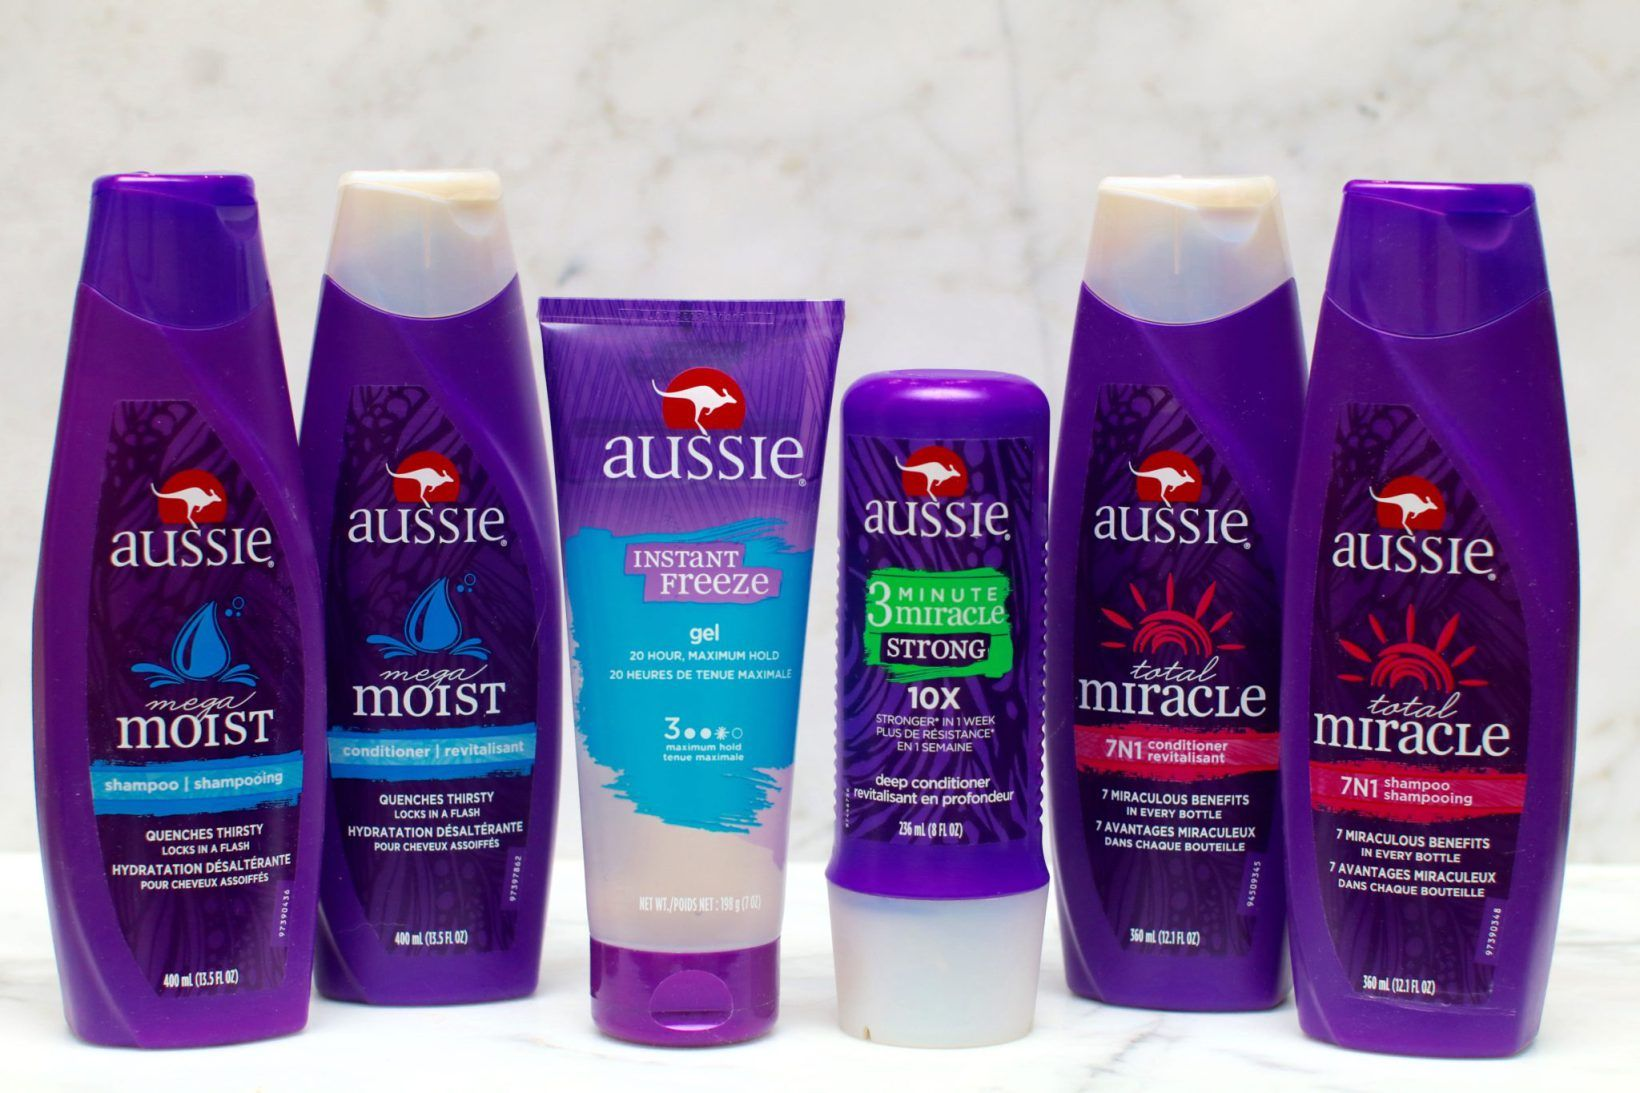 Aussie Hair care best products for curly hair Curly hair